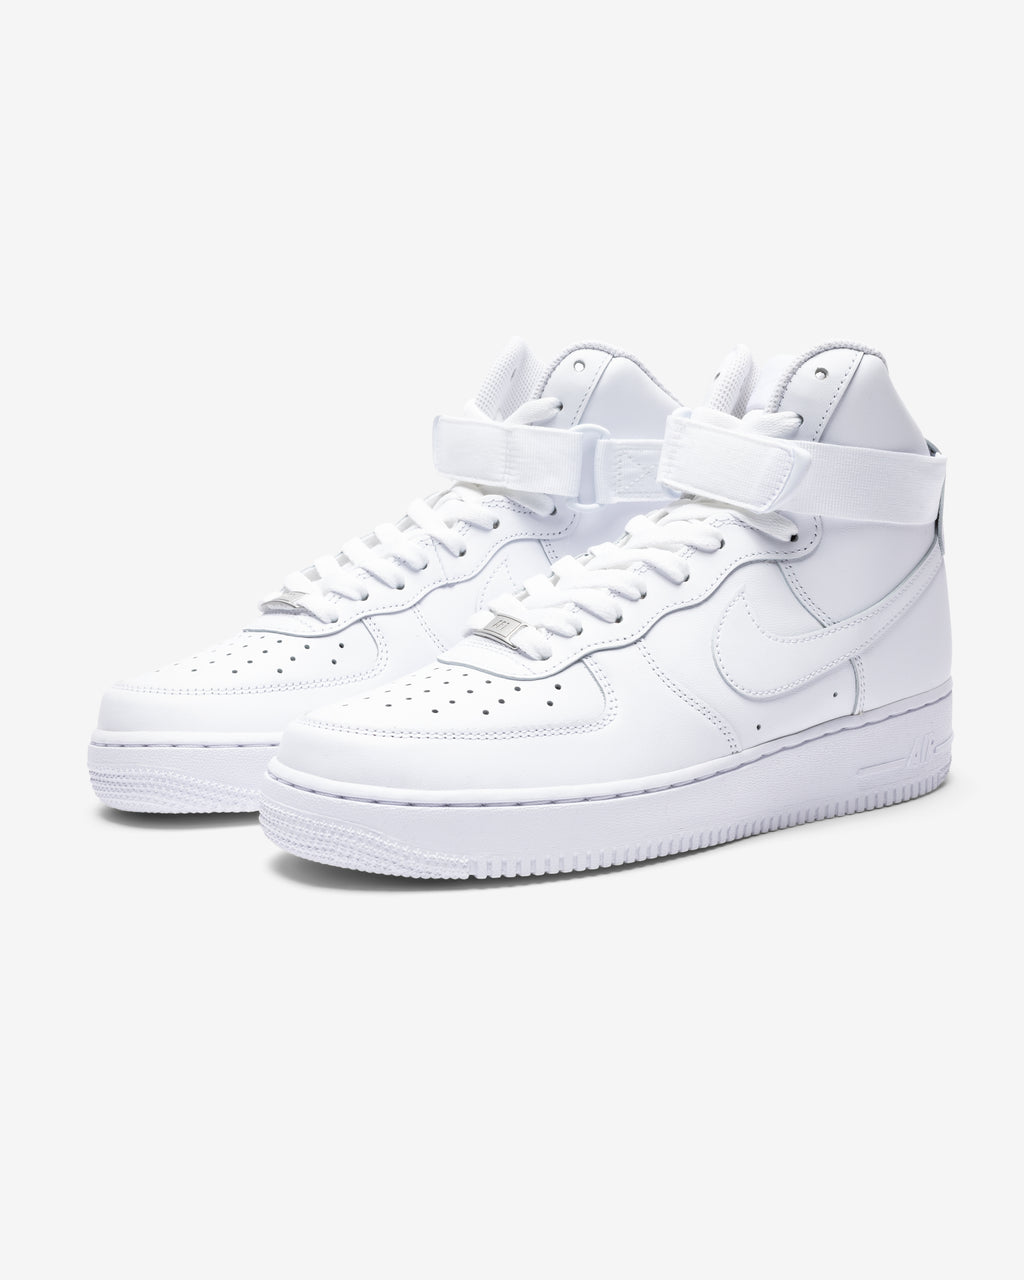 AIR FORCE 1 HIGH '07 - WHITE/ WHITE